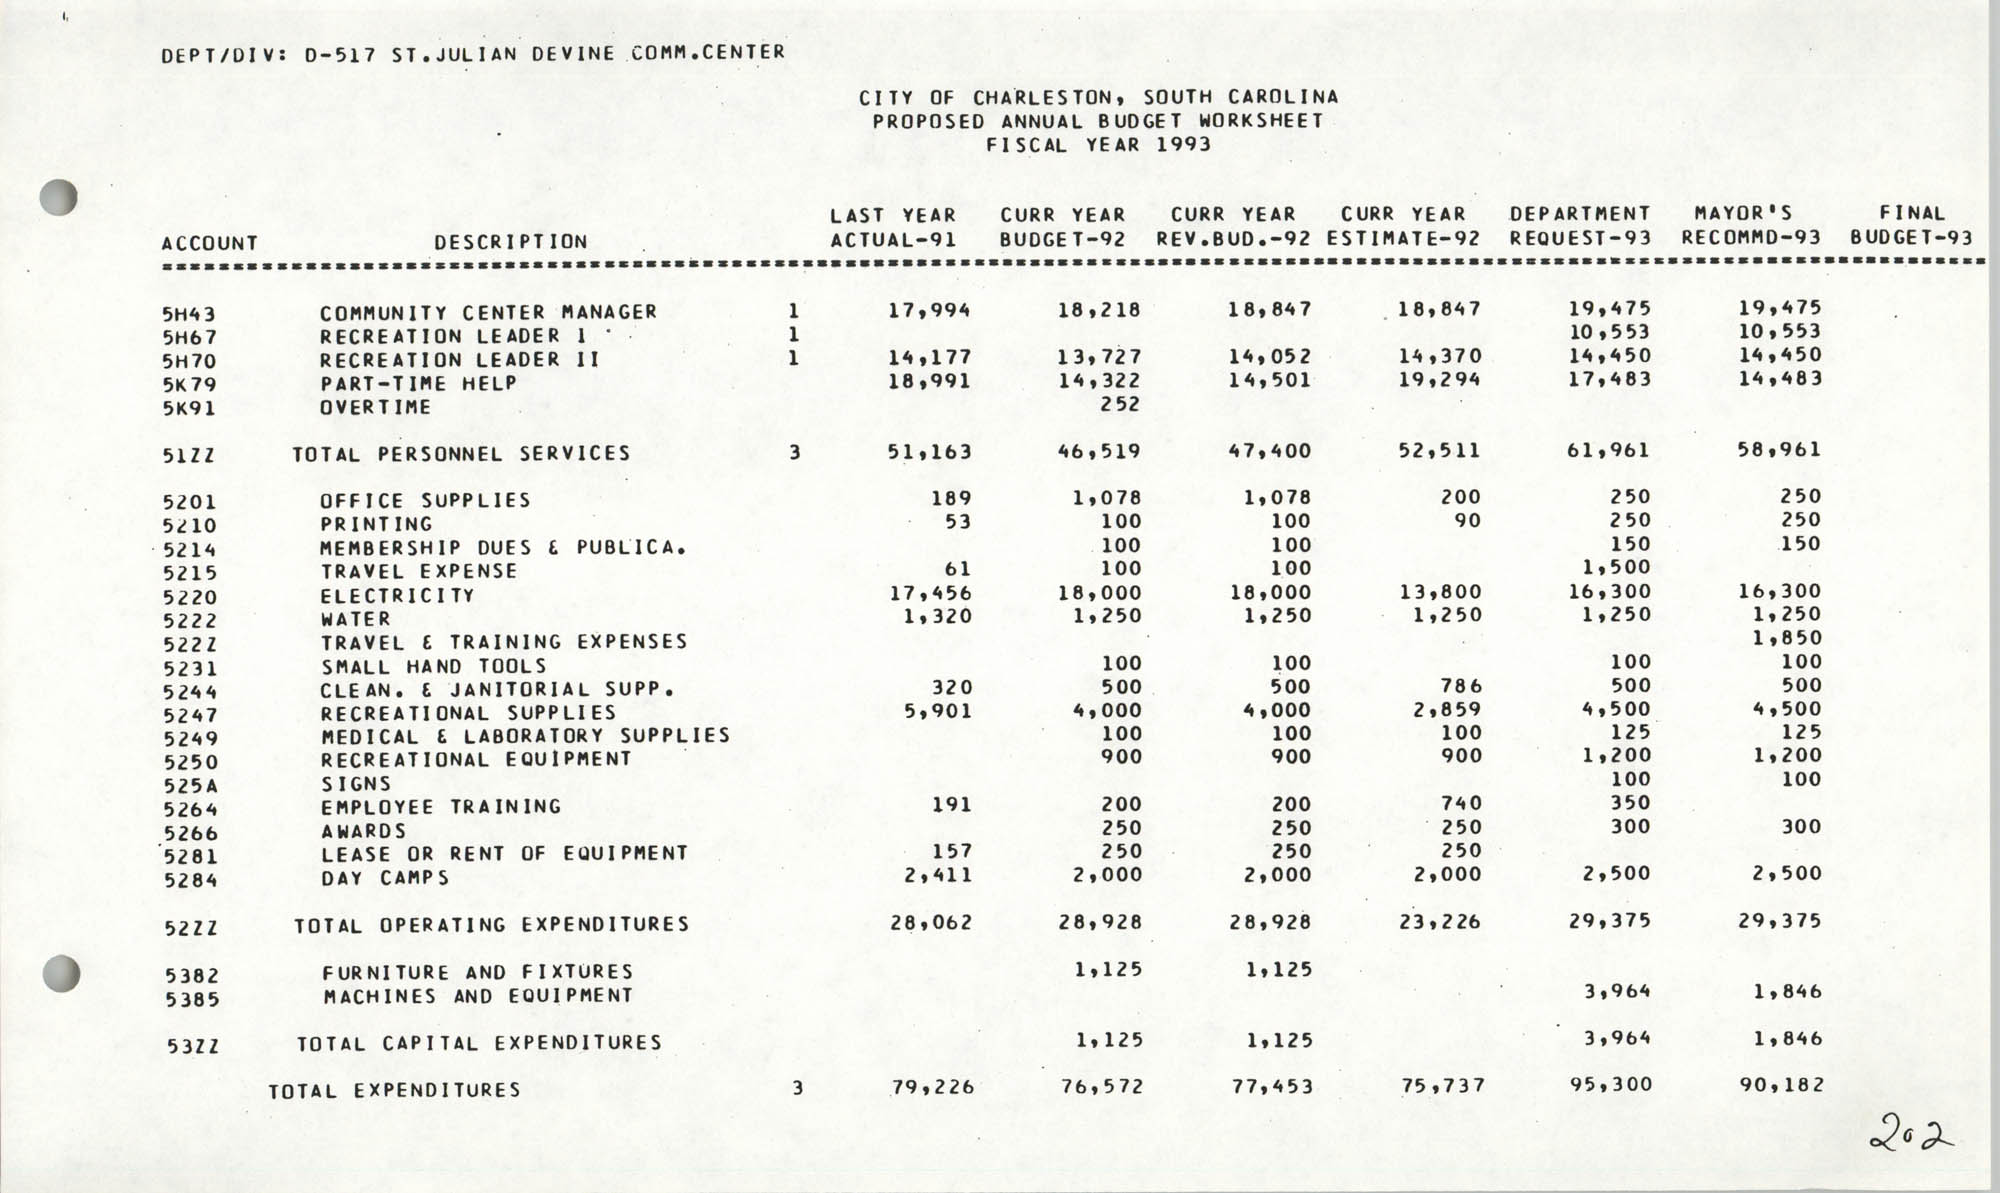 The City Council of Charleston, South Carolina, 1993 Budget, Page 202